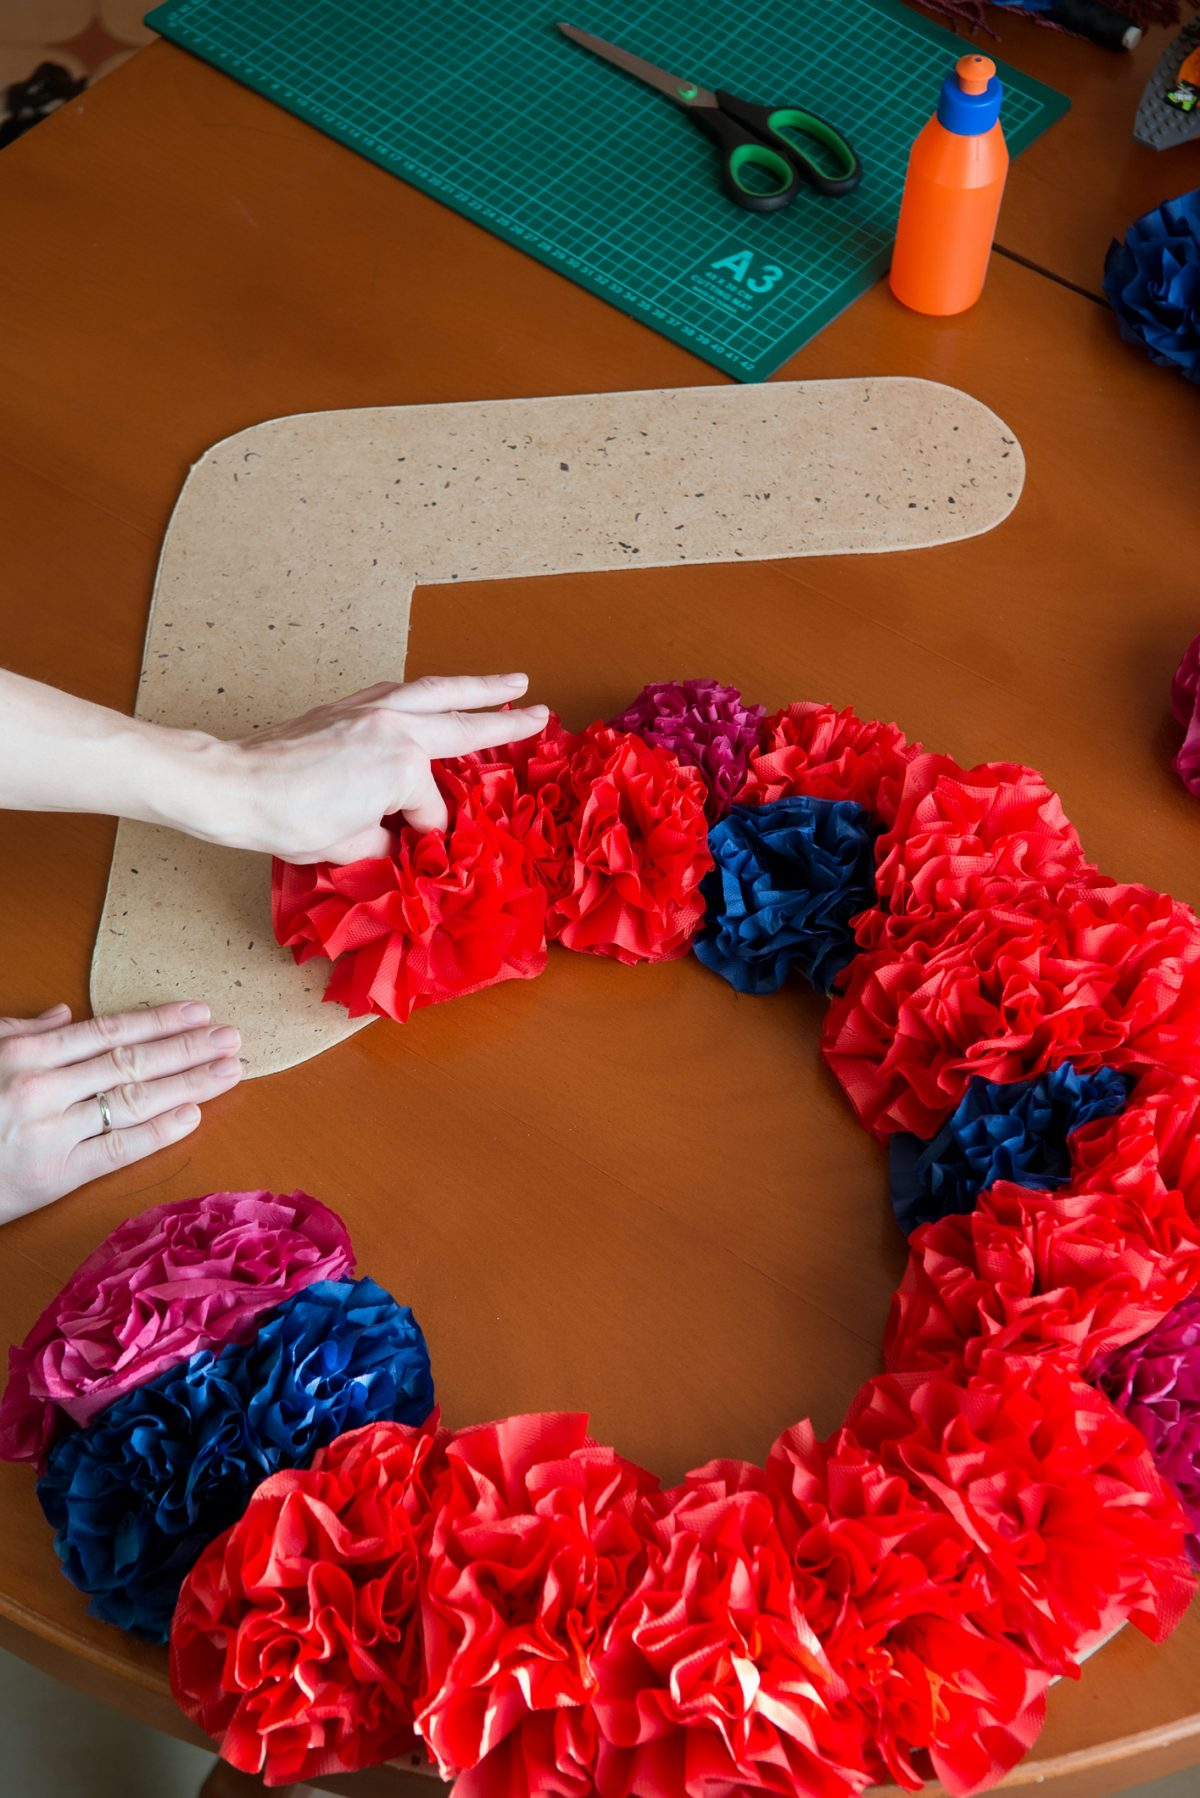 Tissue paper flowers used in art projects